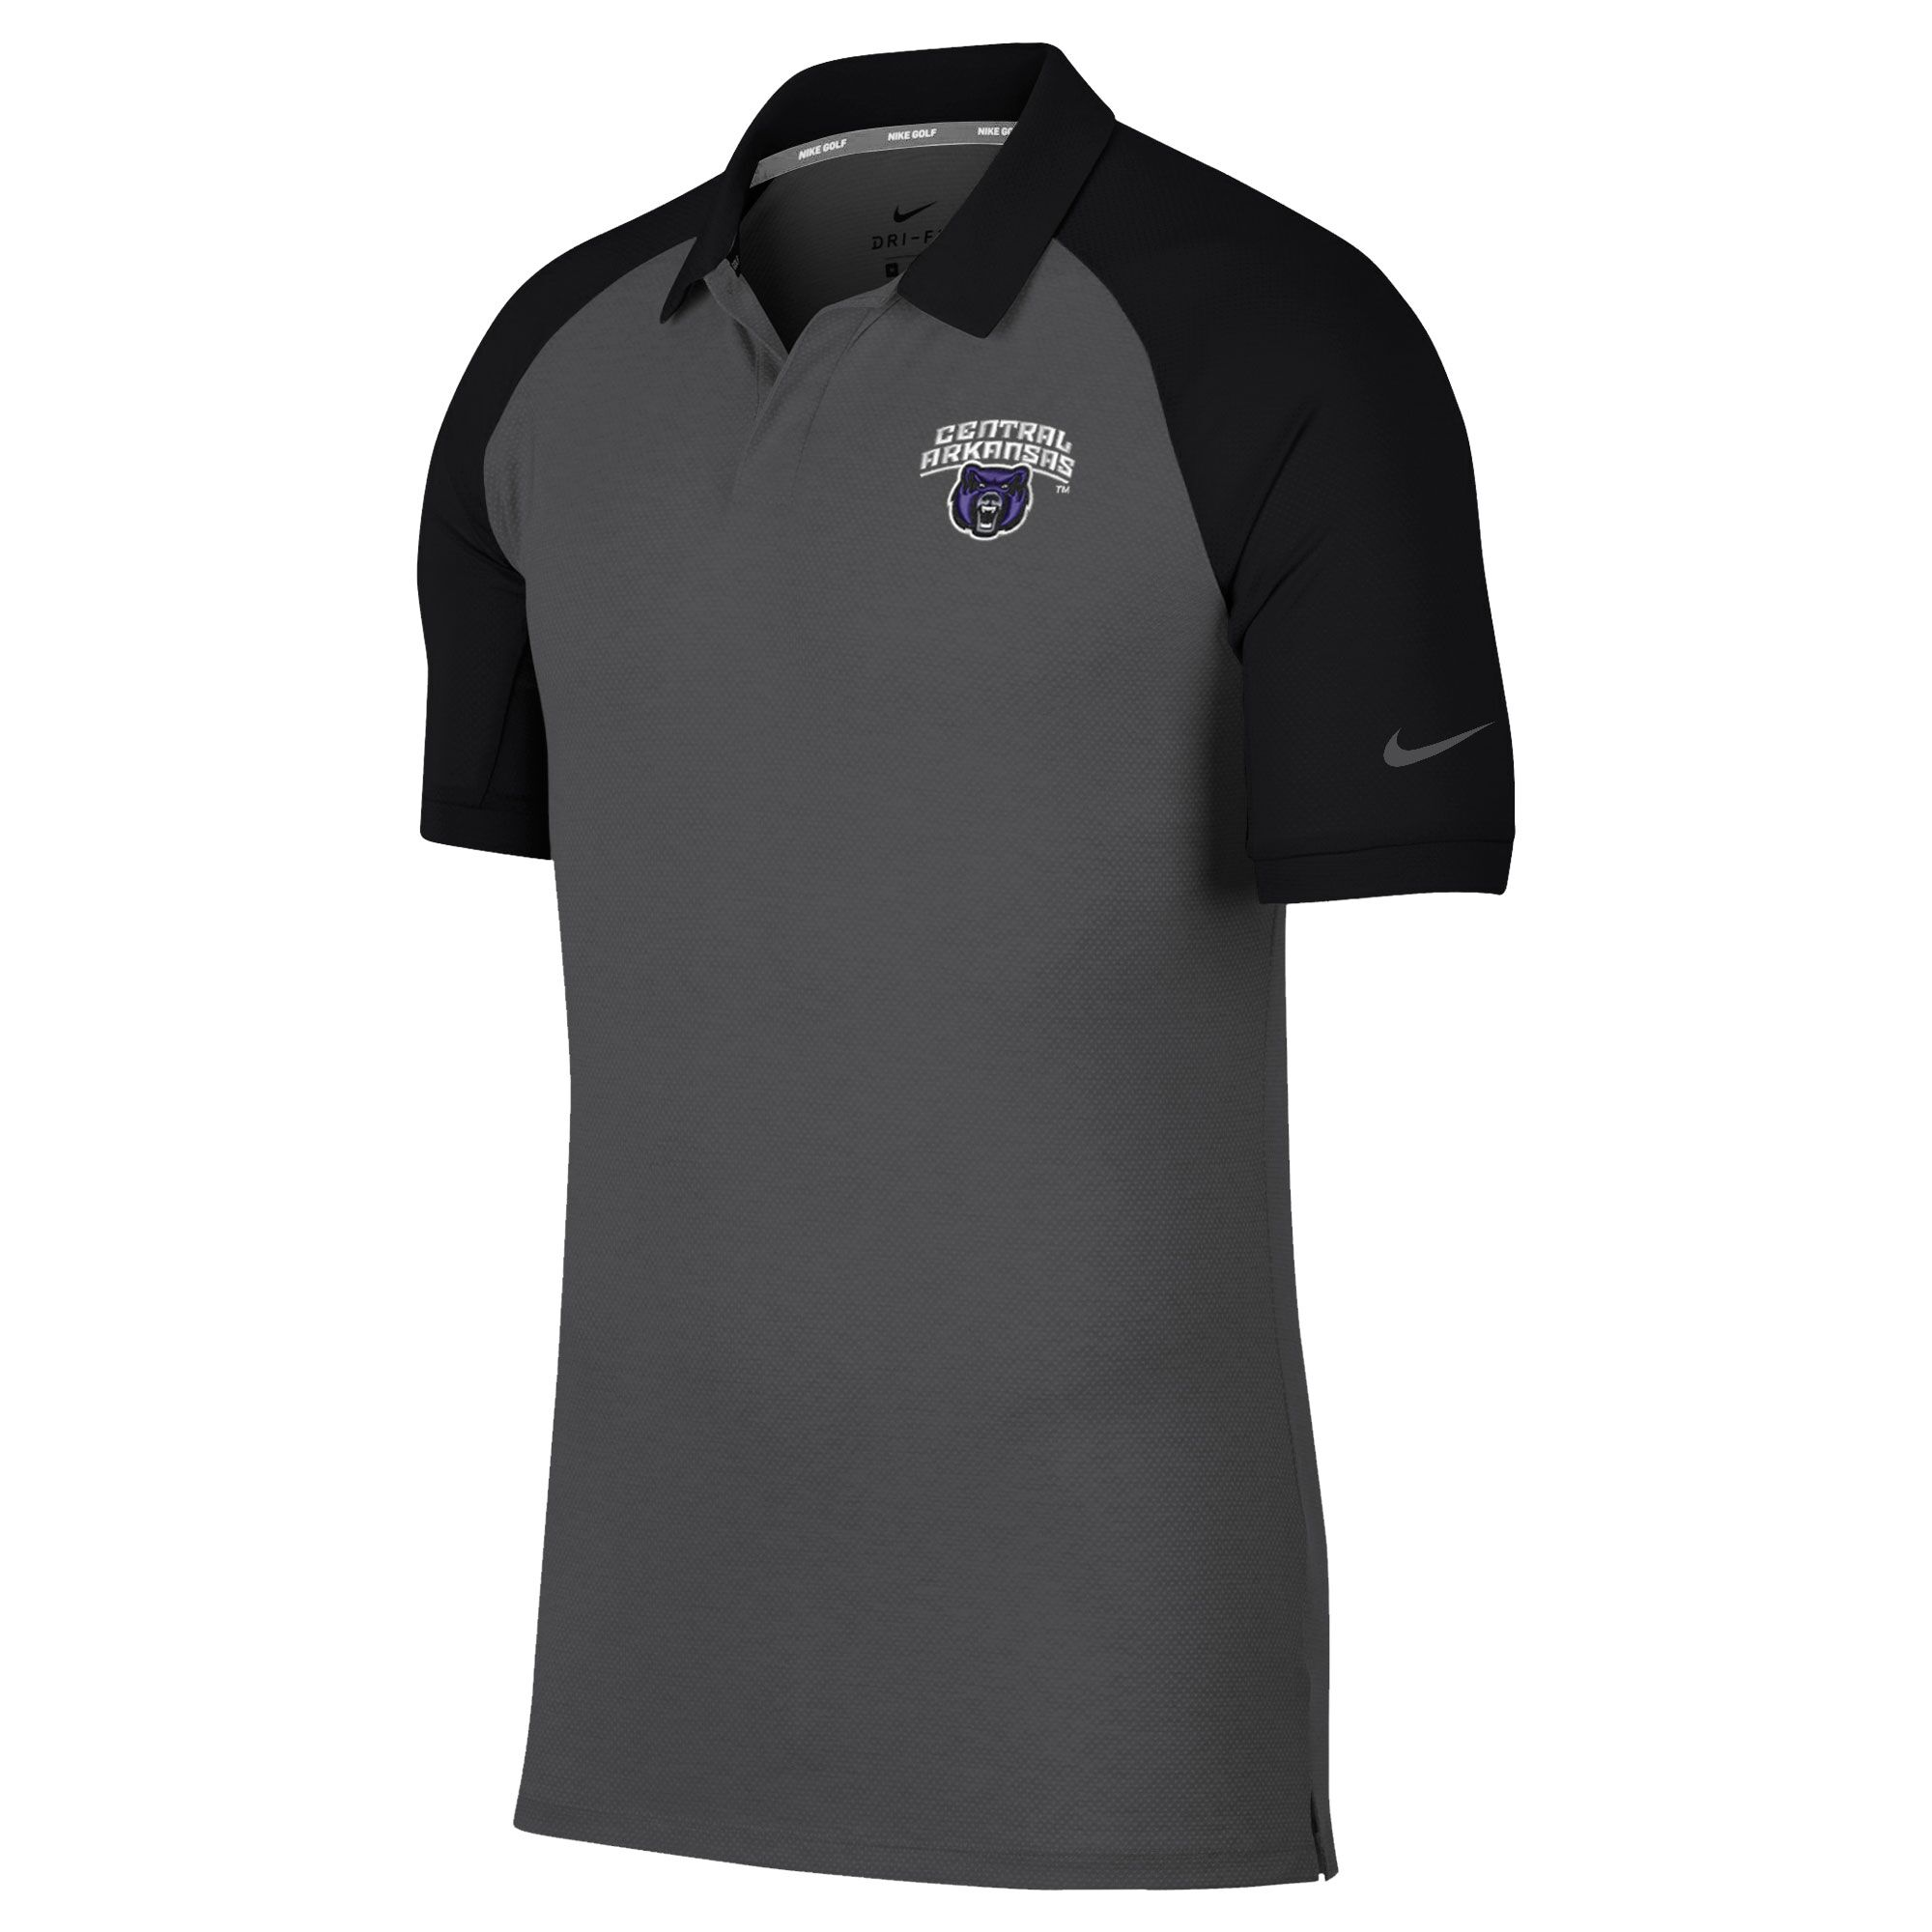 Men's Dry Raglan Polo